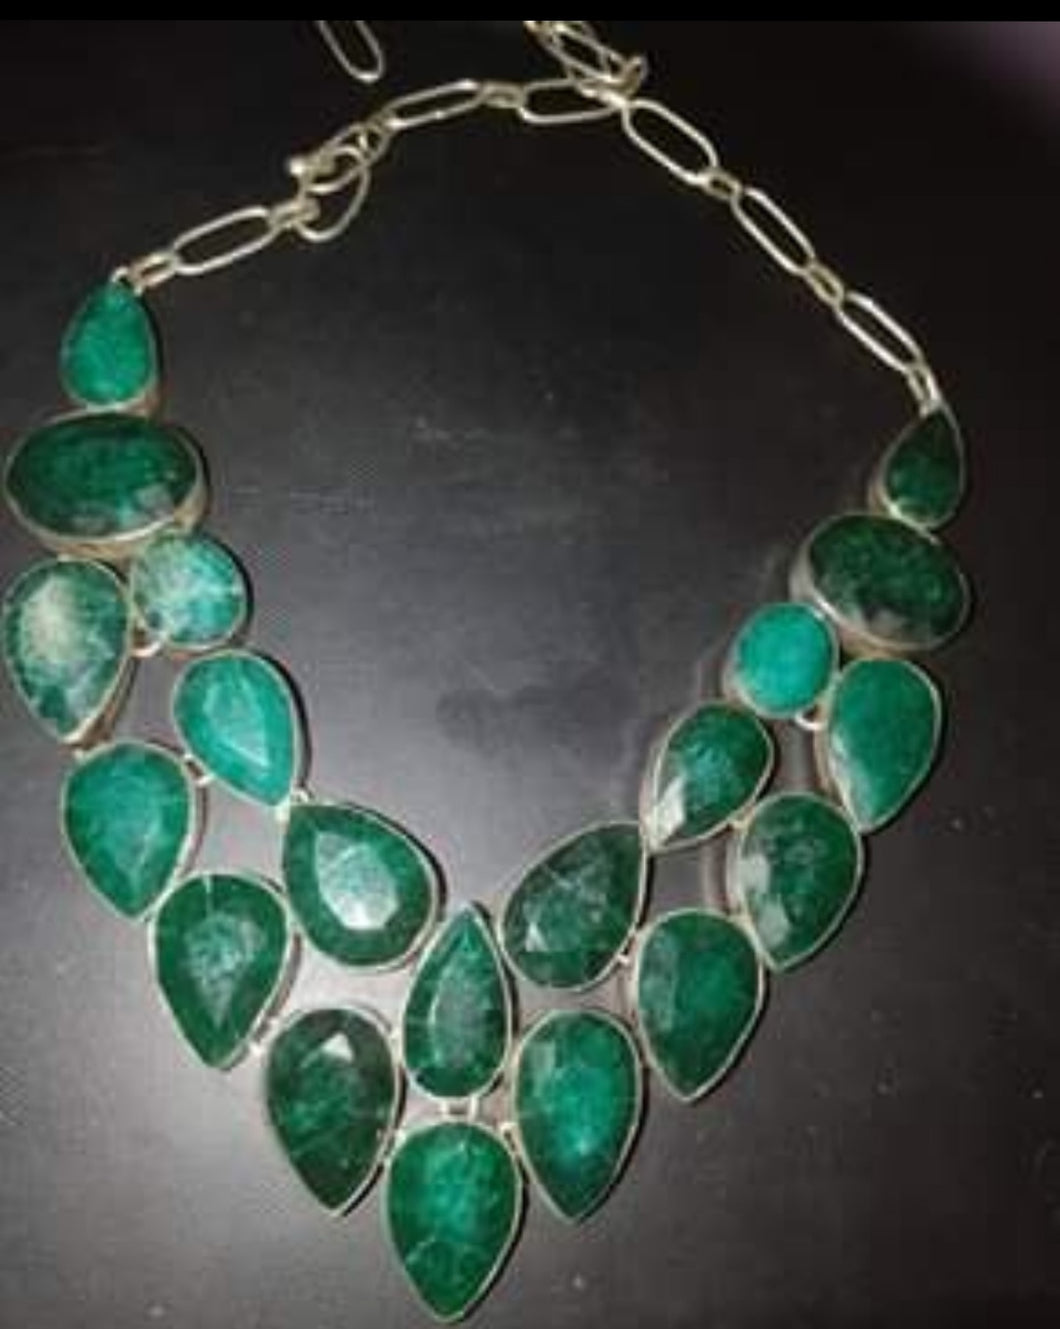 Stunning Emerald necklace